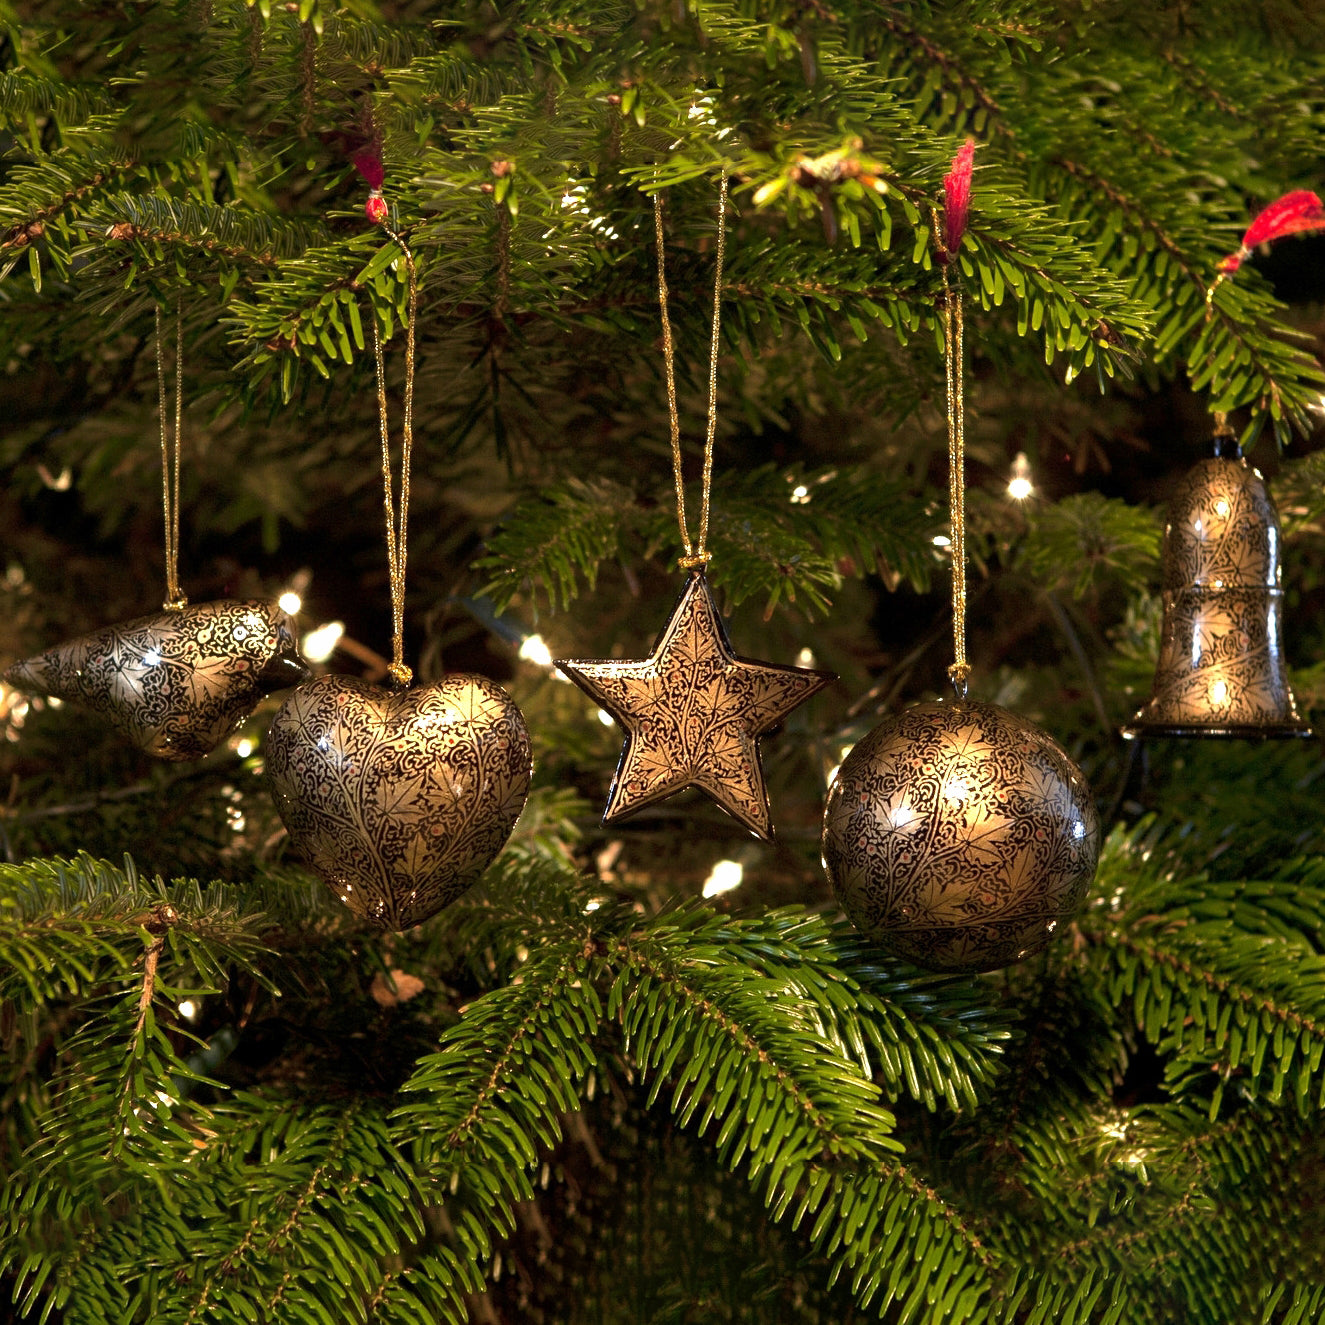 Bauble Christmas Decoration Set - Gold Leaf Design - Set Of 5 | Christmas Decoration - The Naughty Shrew